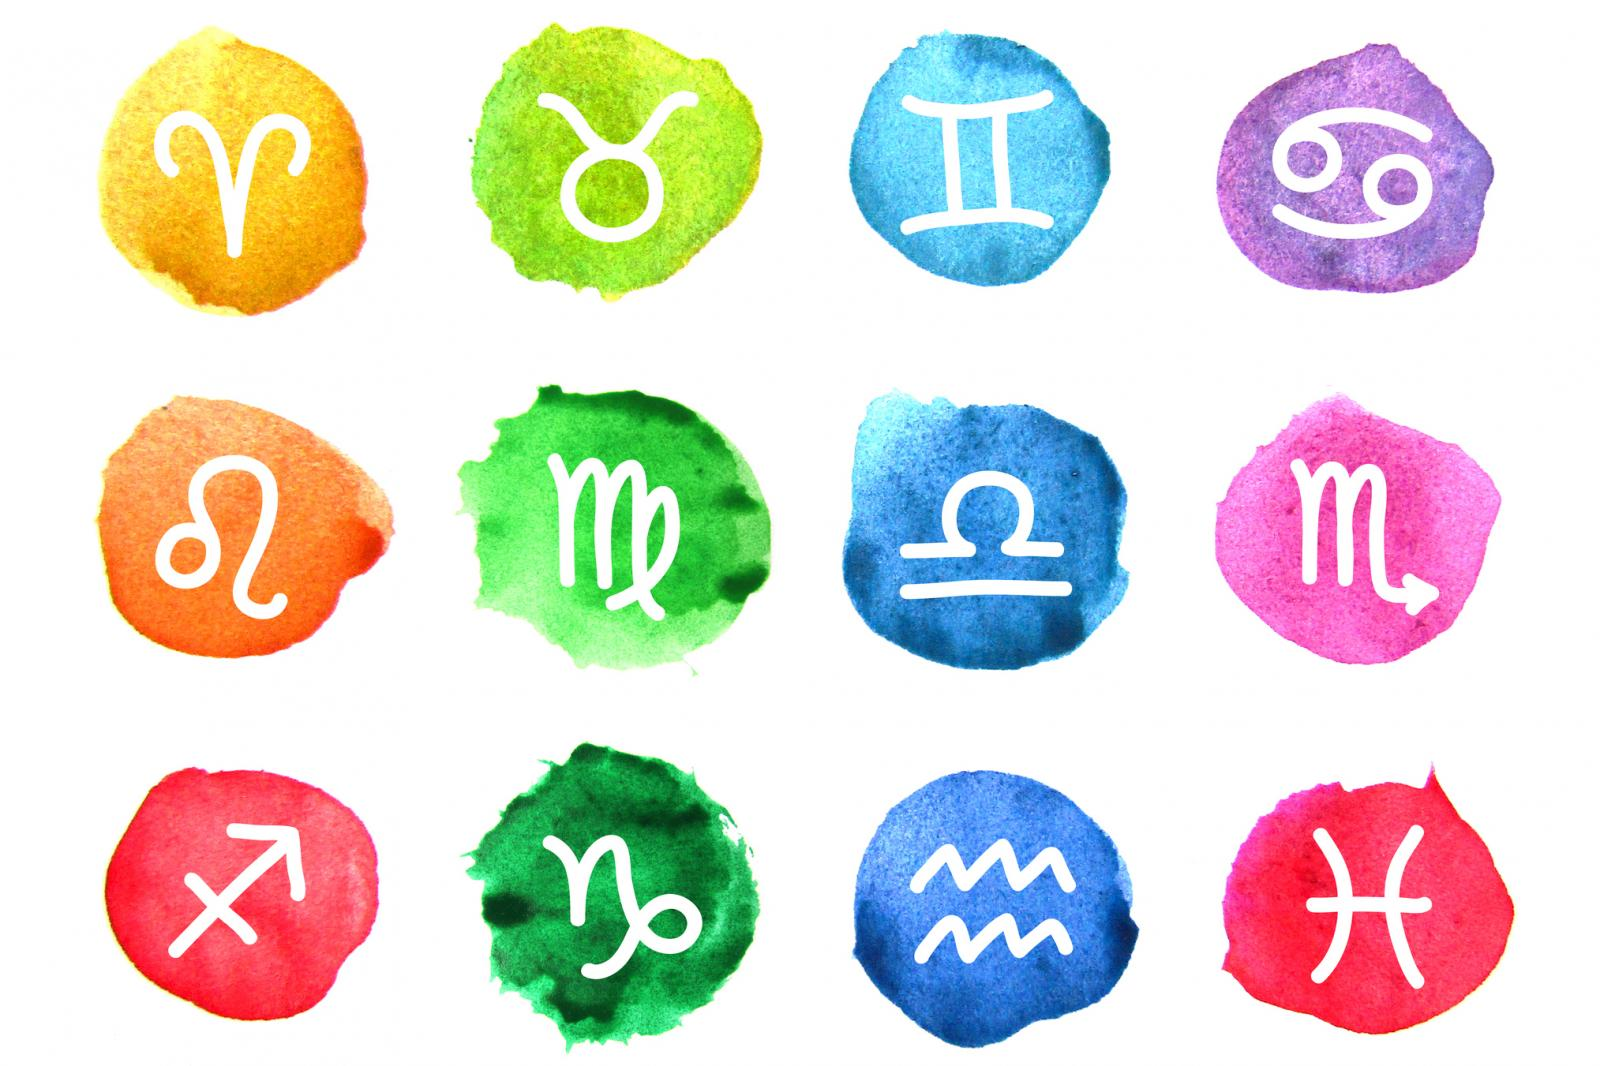 Most powerful zodiac sign personality traits according astrology